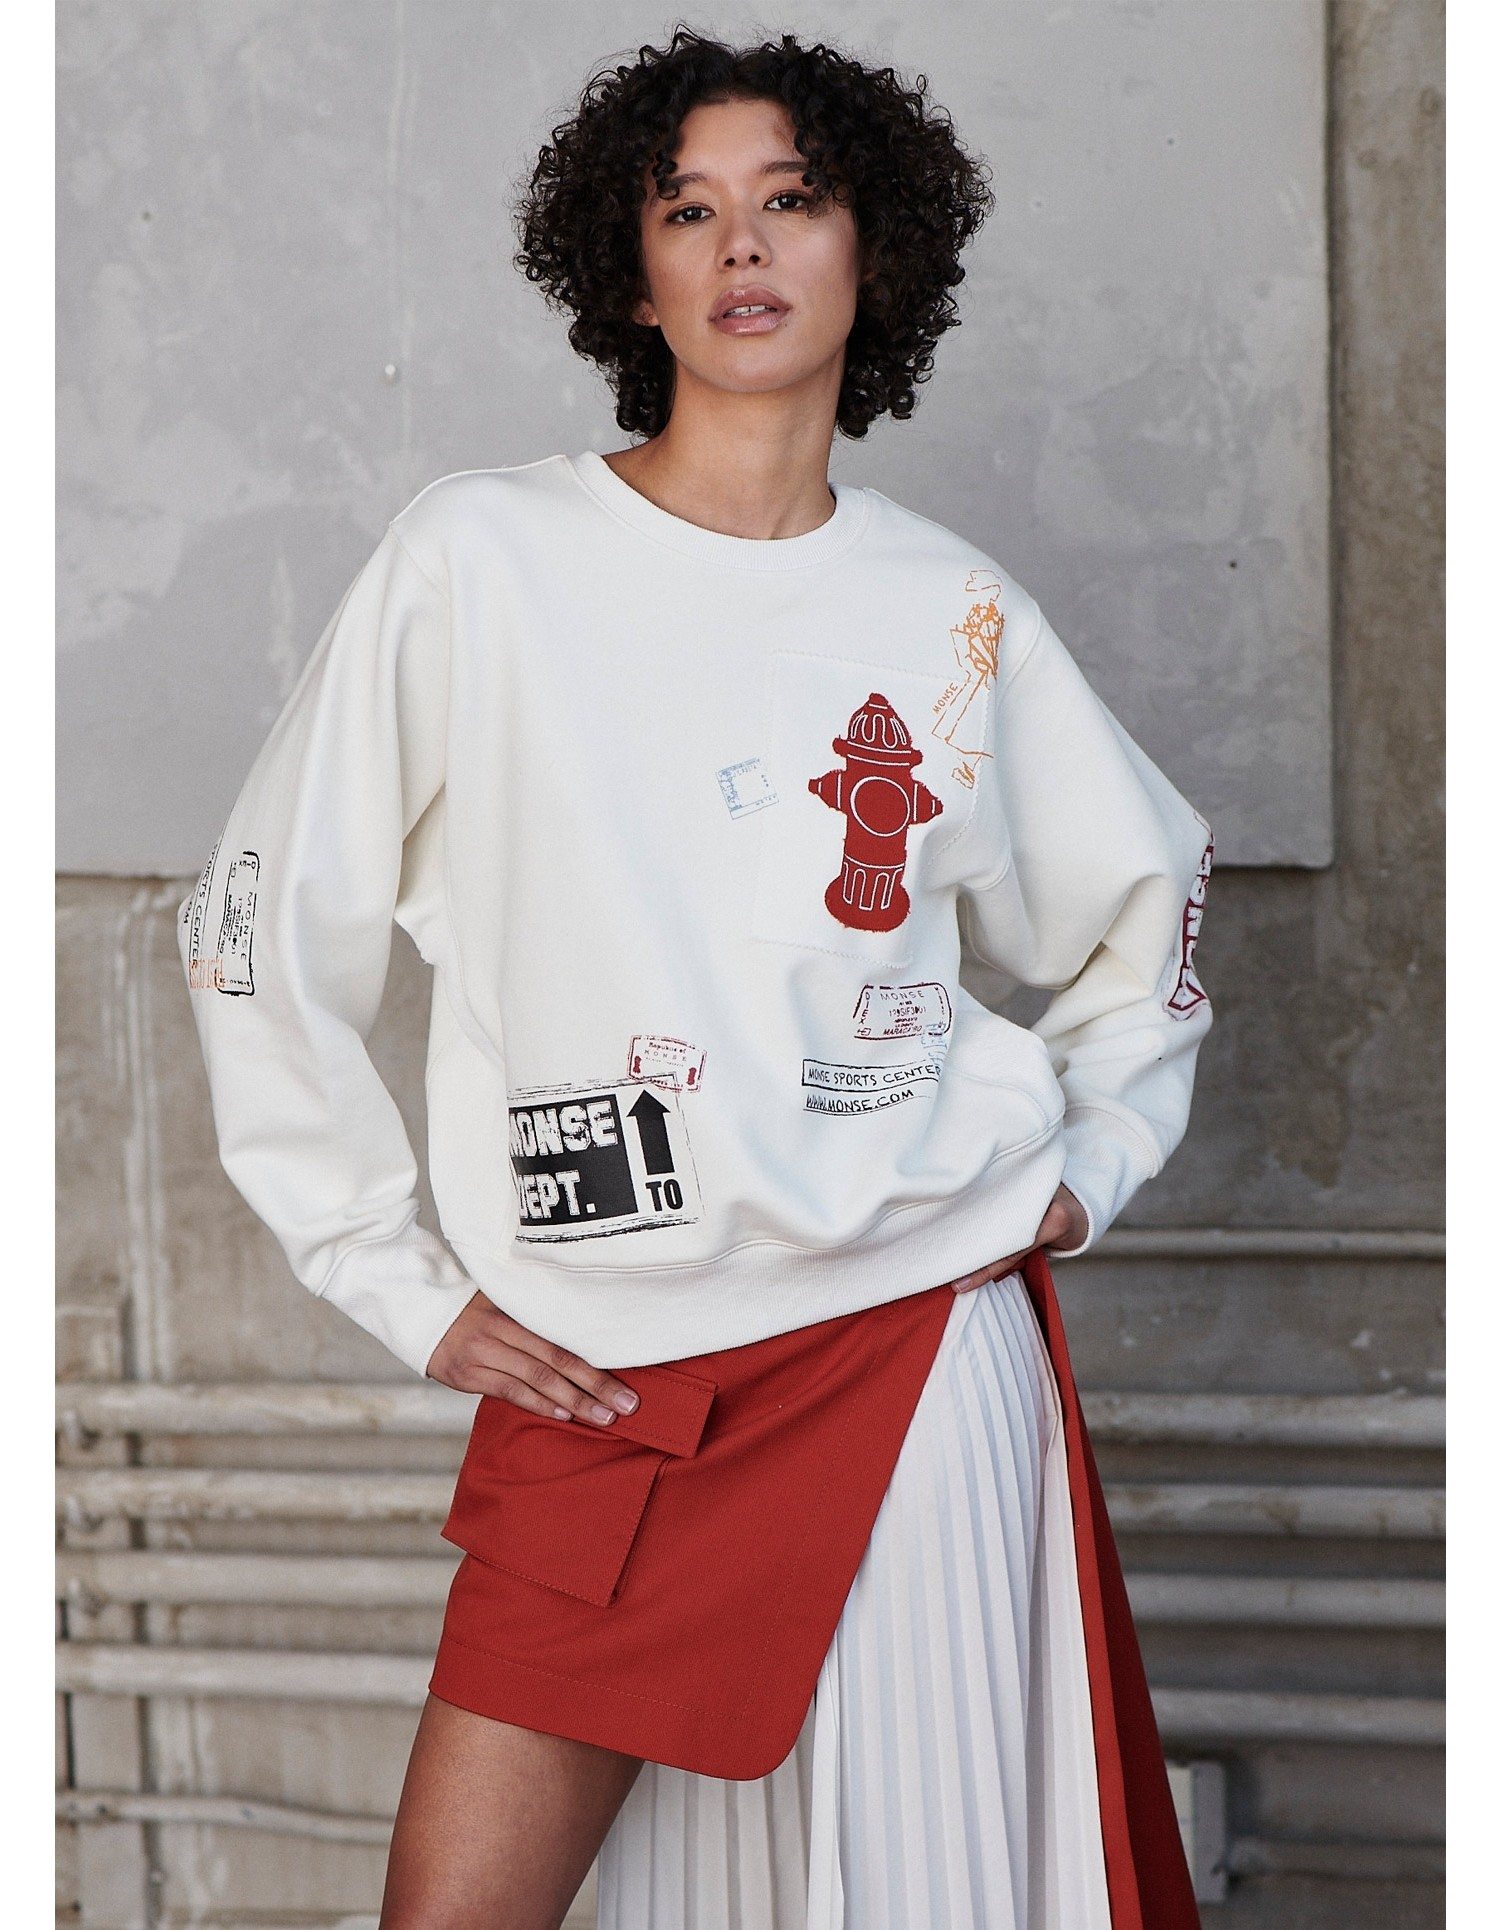 MONSE Scrapbook Pullover Sweatshirt in Ivory on Model Front Detail View